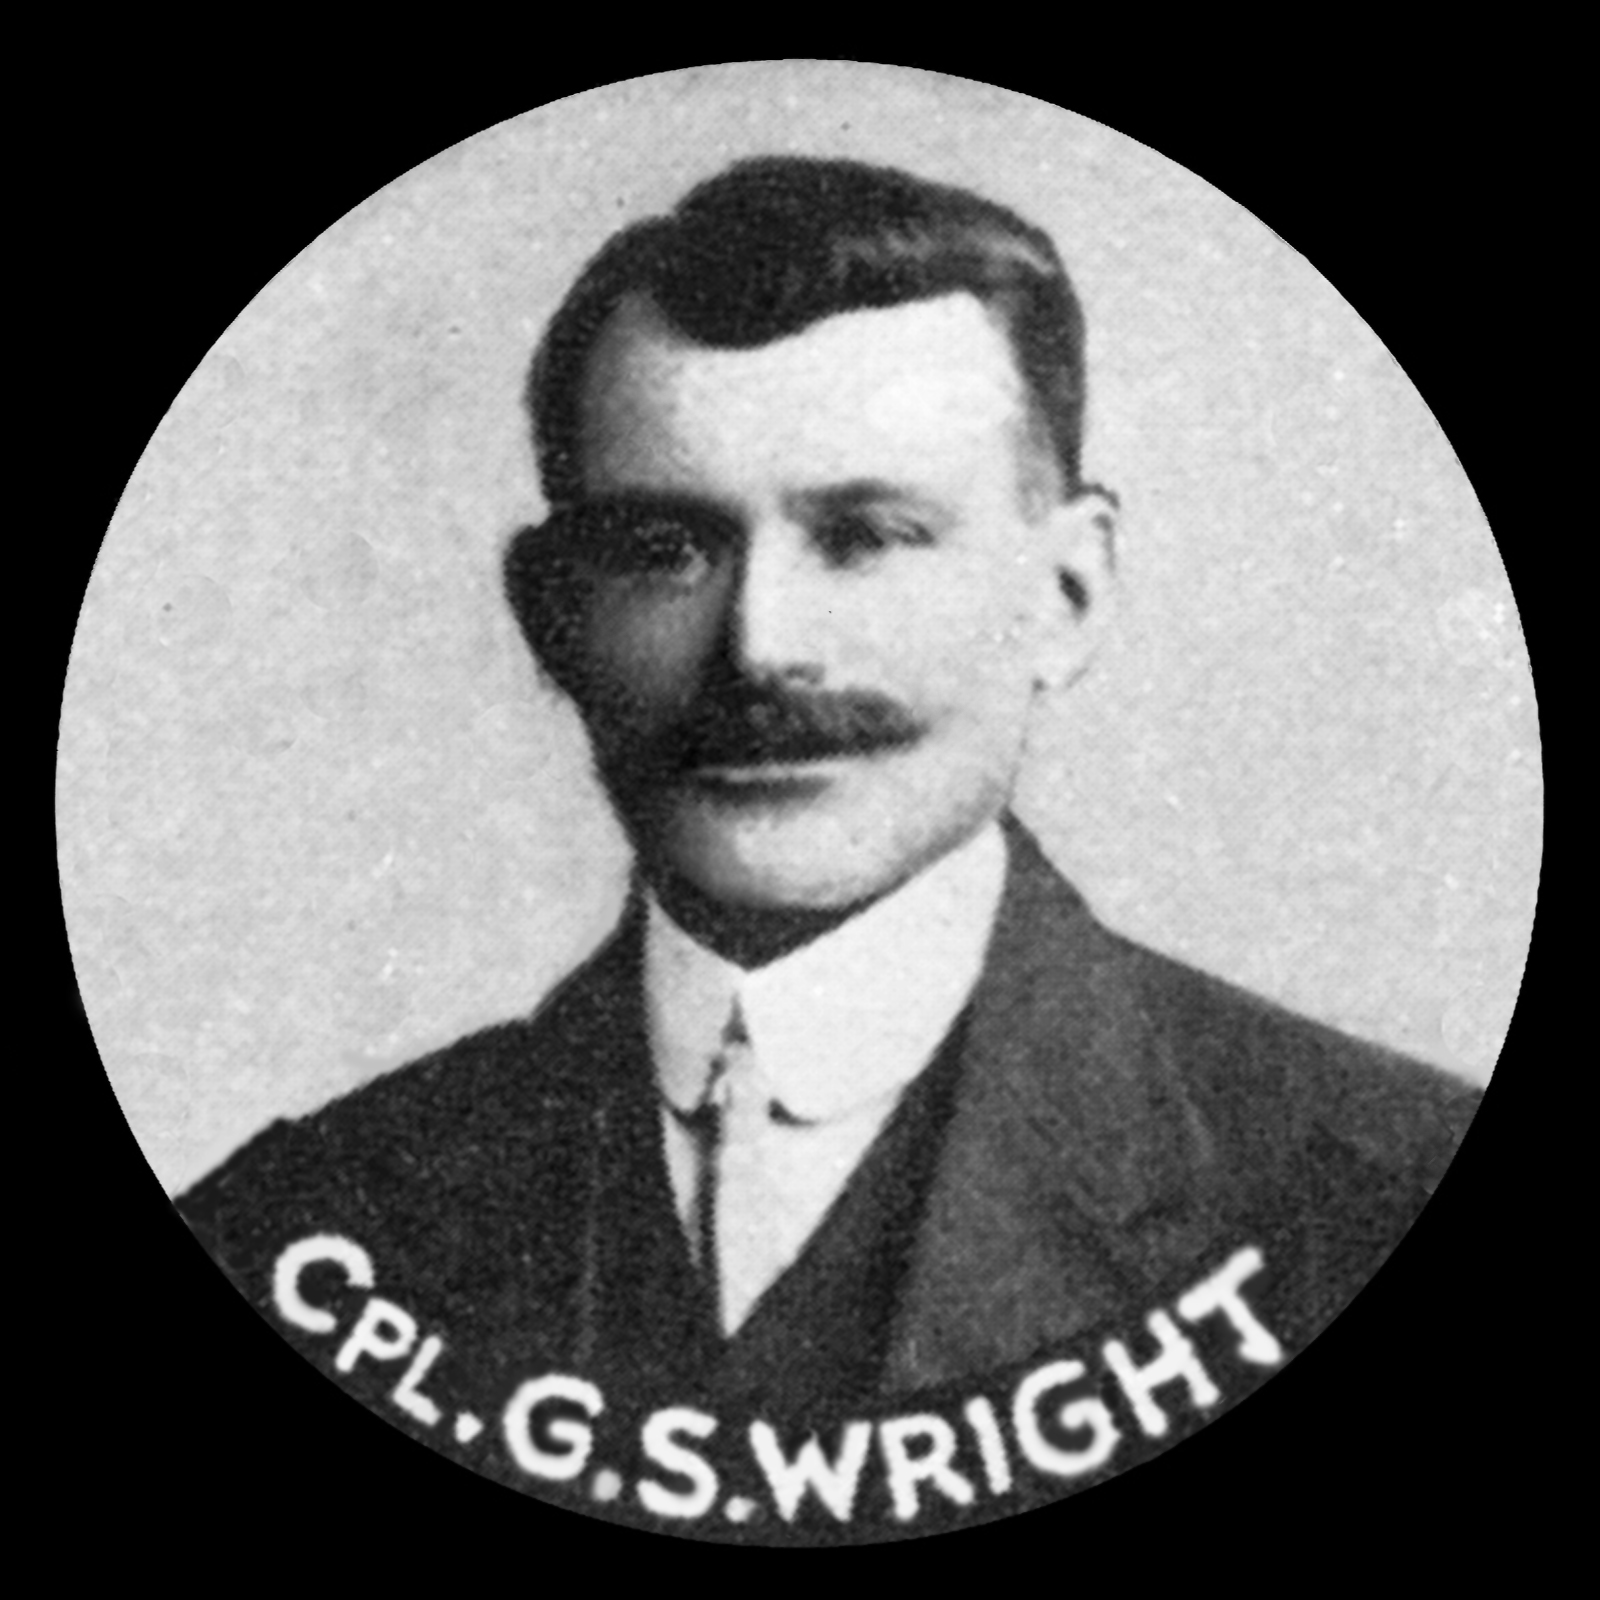 WRIGHT George Samuel